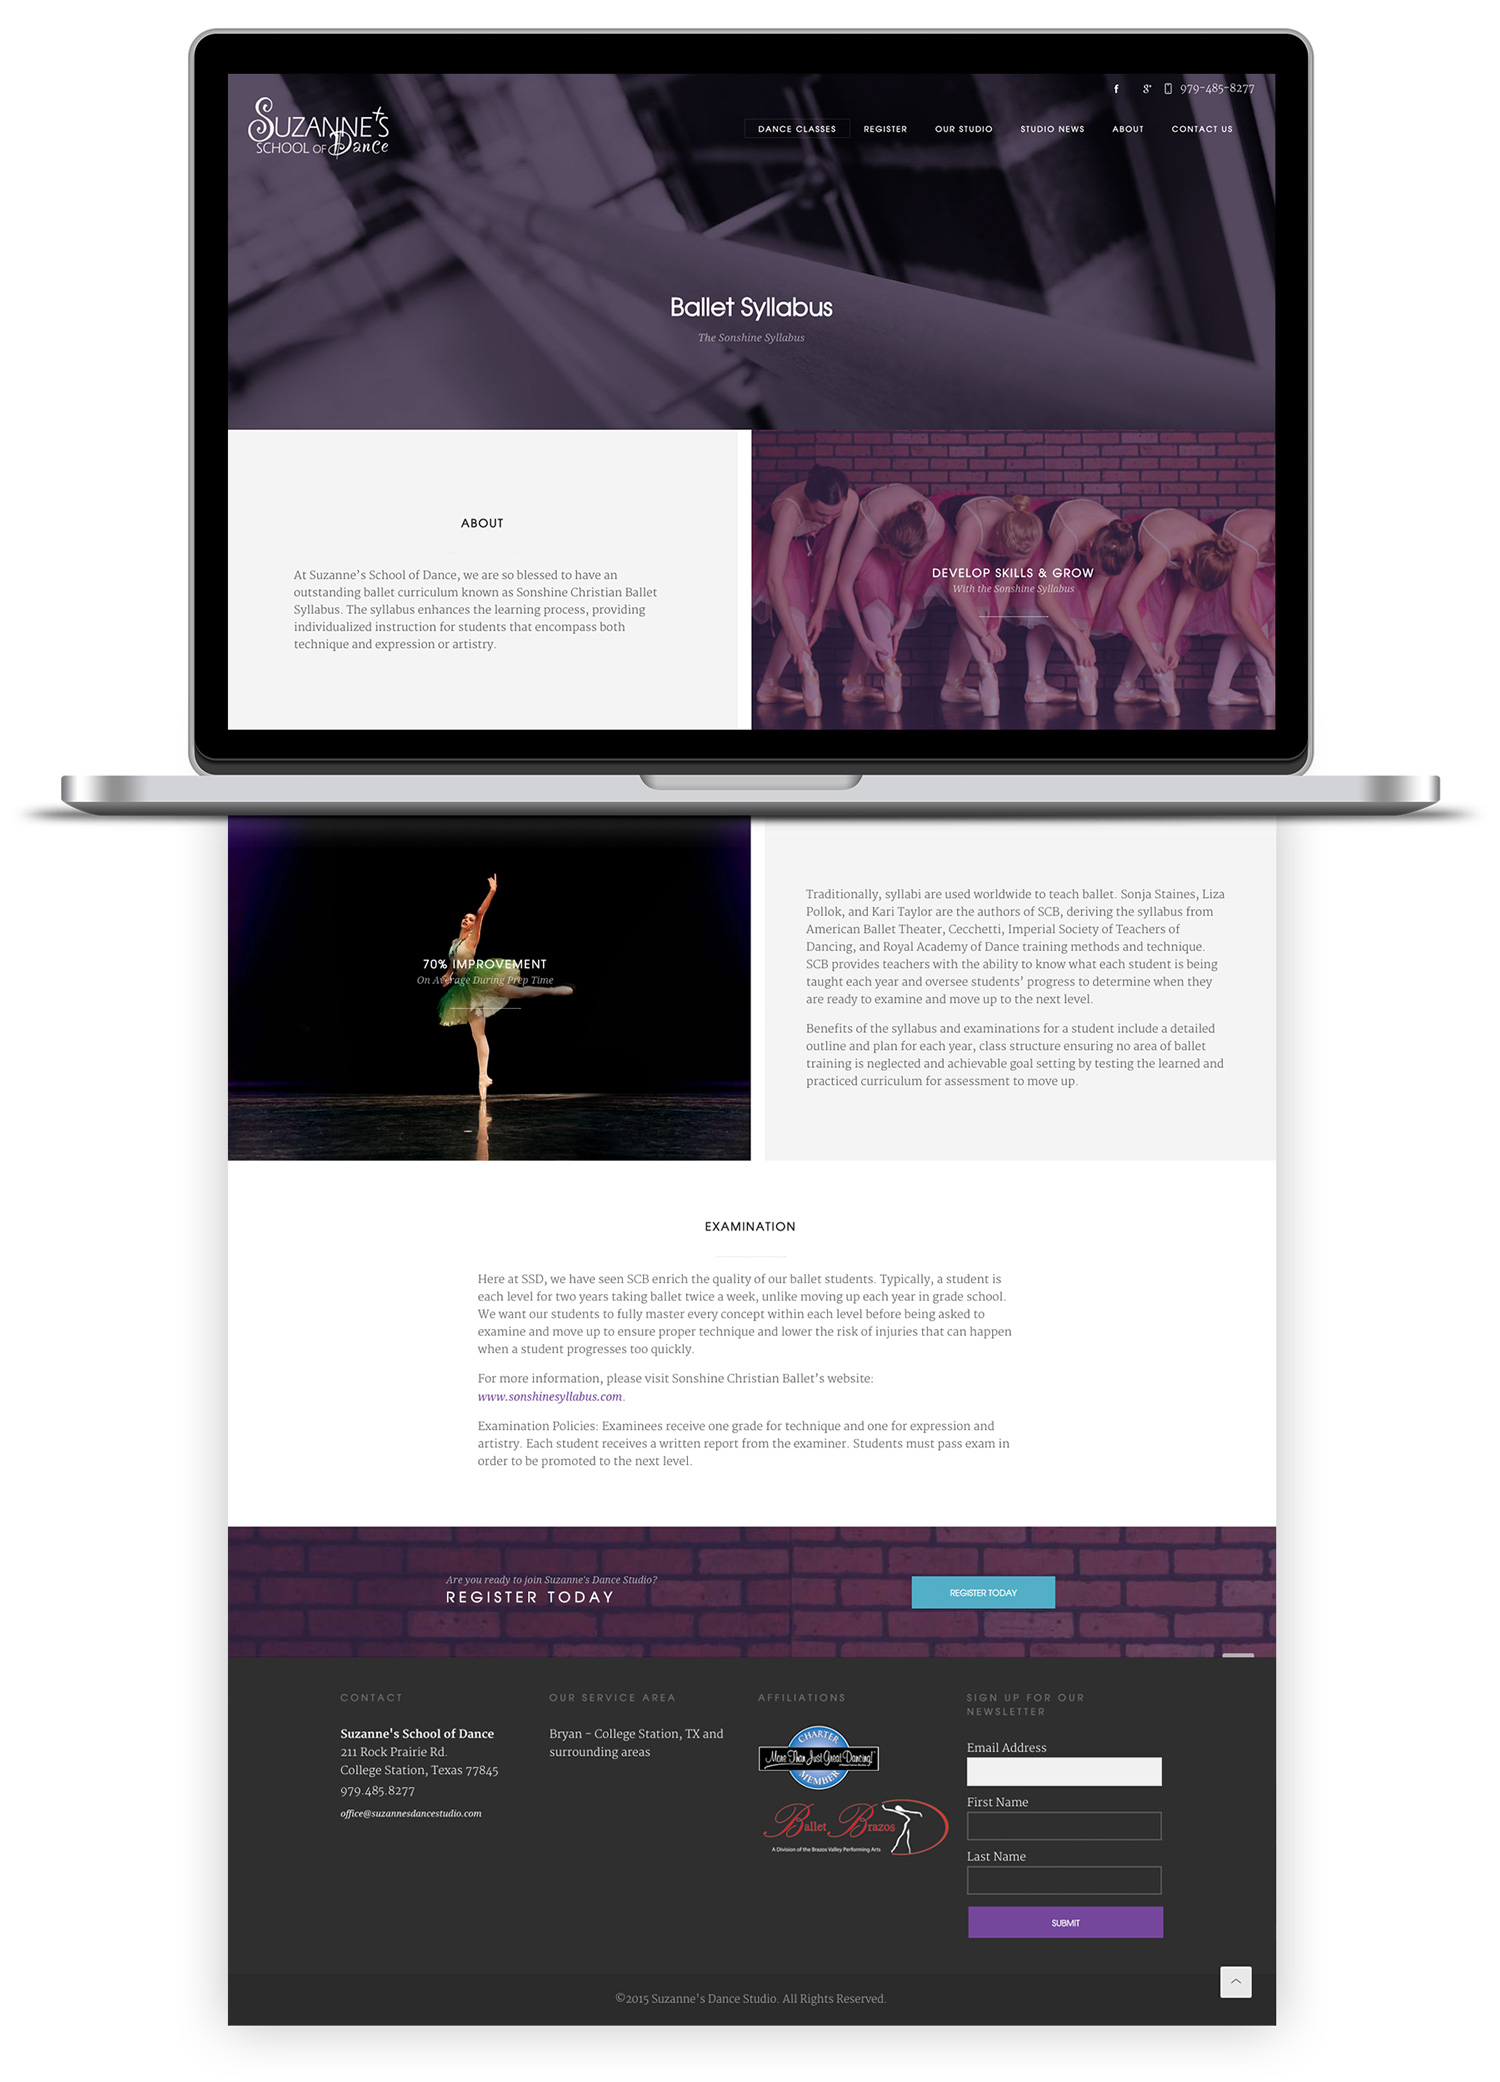 Image of Ballet Syllabus landing page.